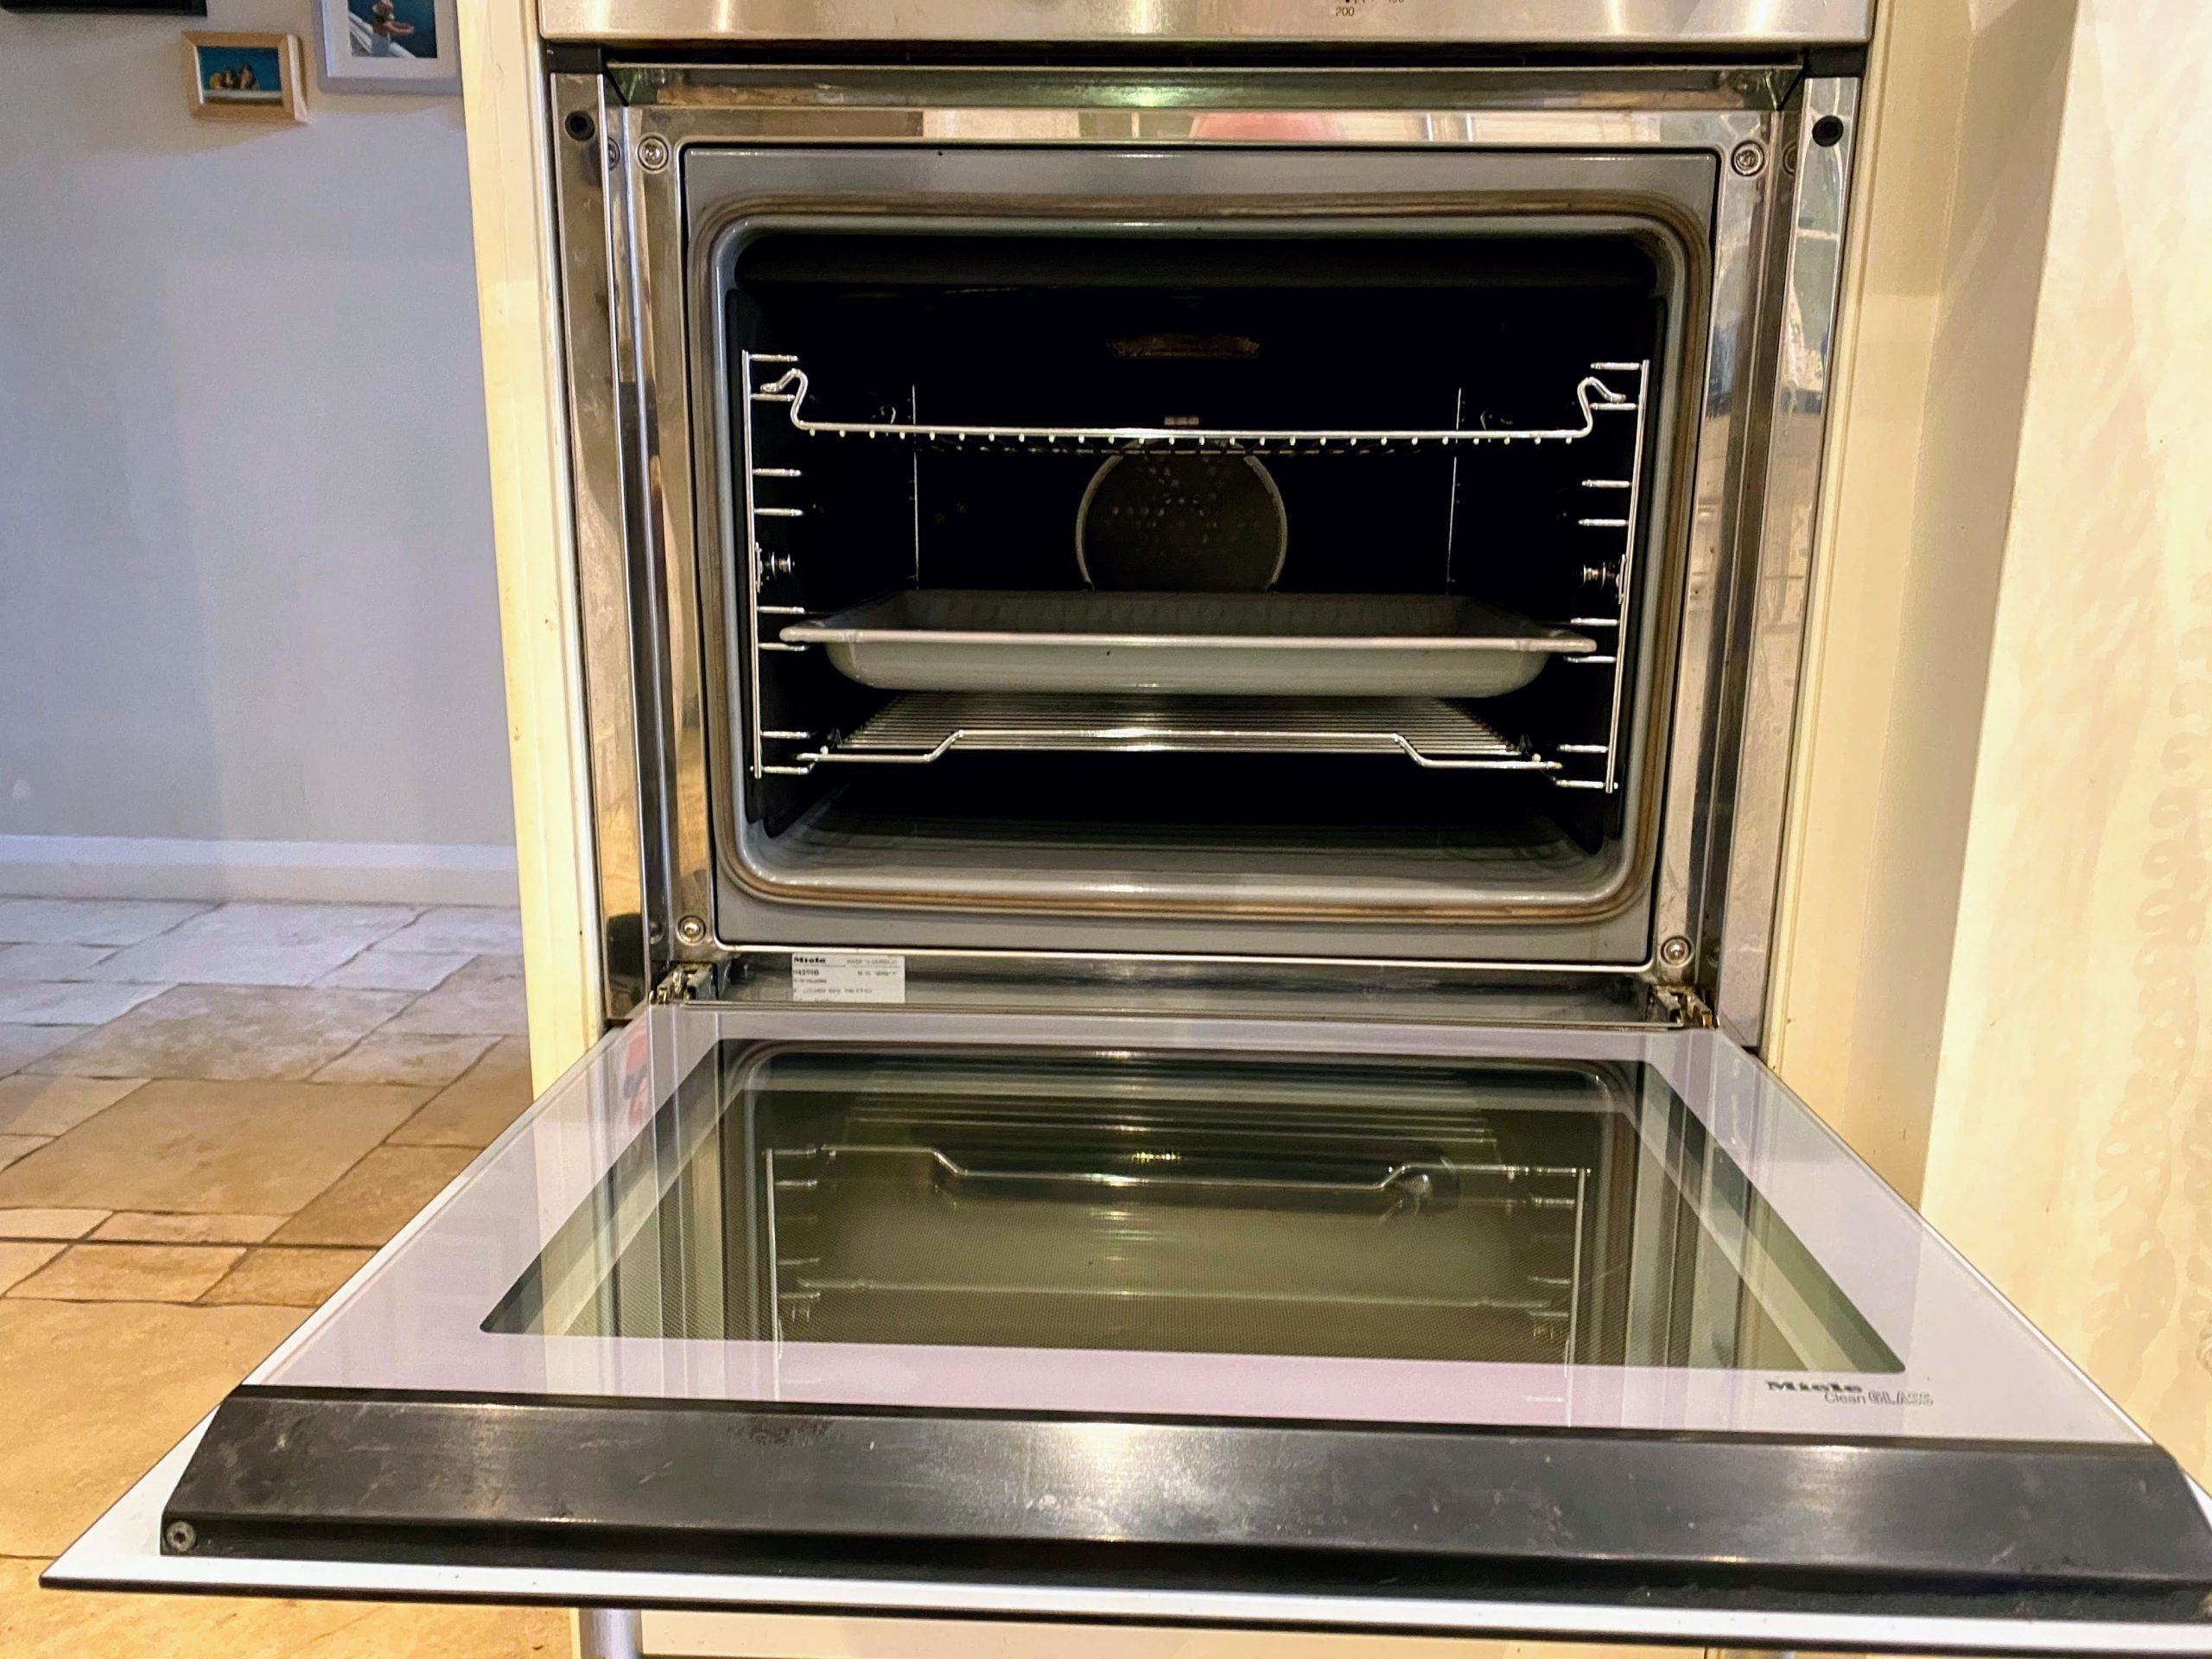 Miele Oven After Clean